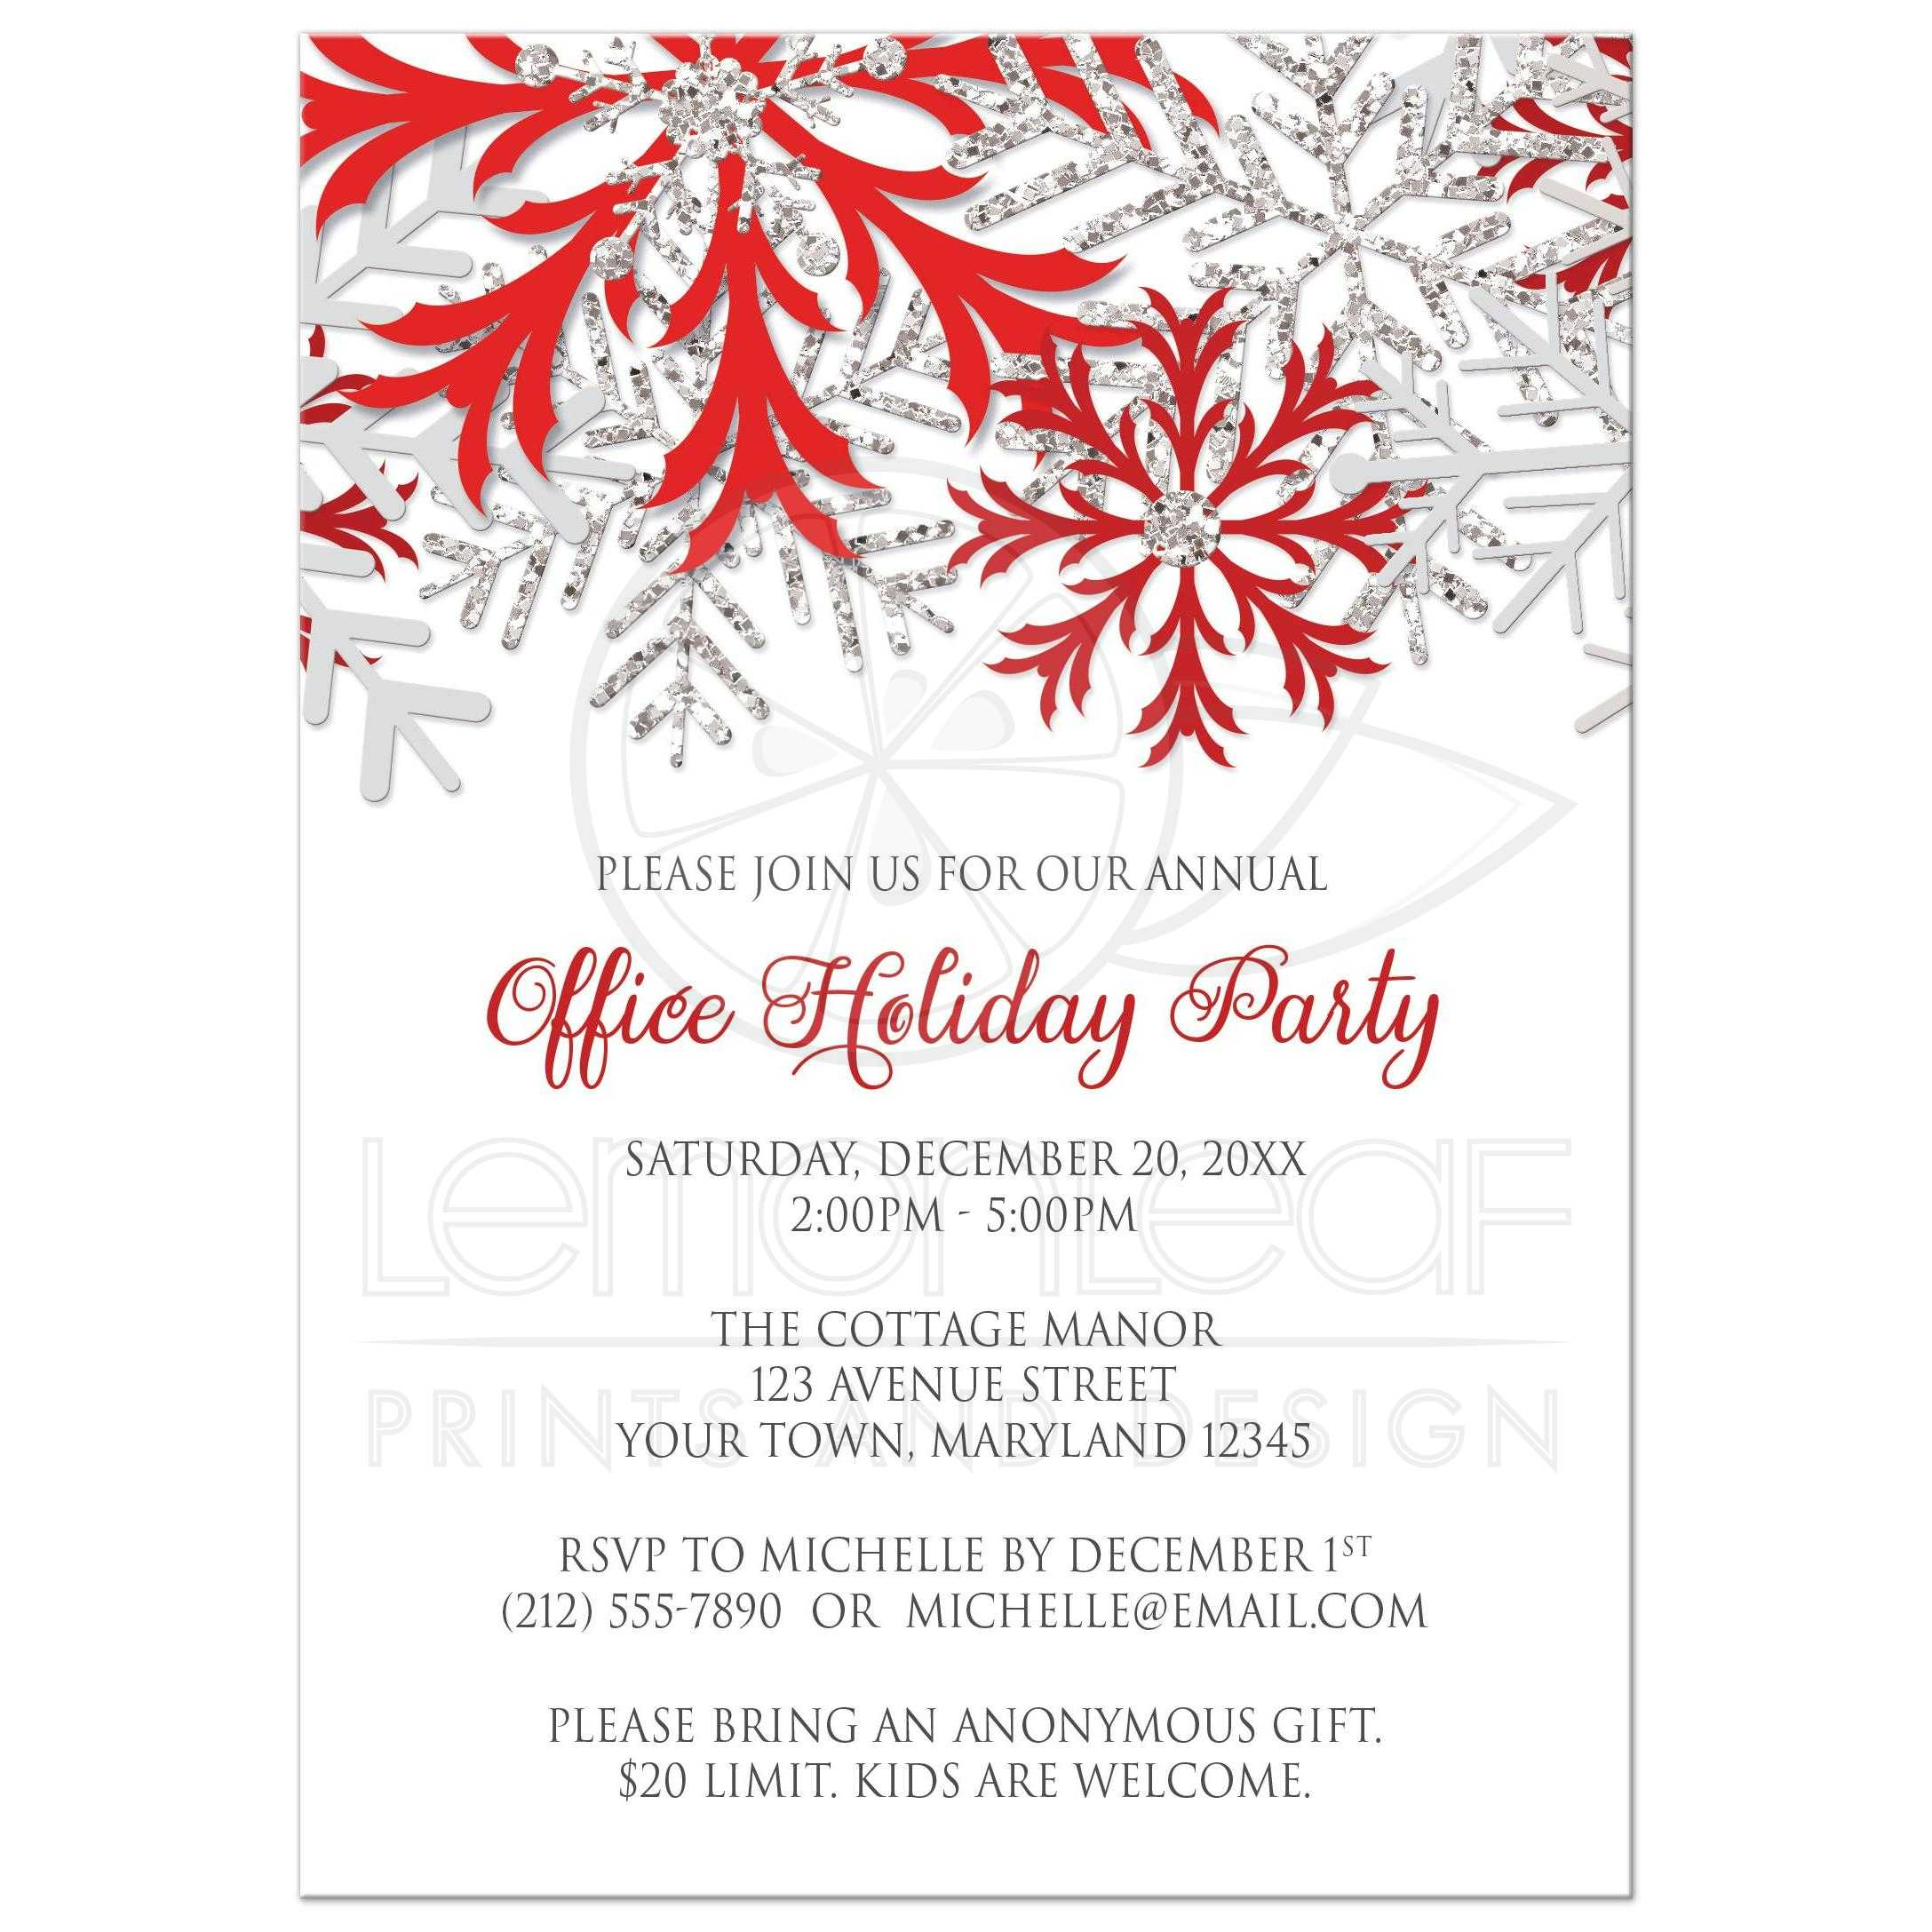 party invitations red silver snowflake winter holiday party invitations red silver snowflake winter